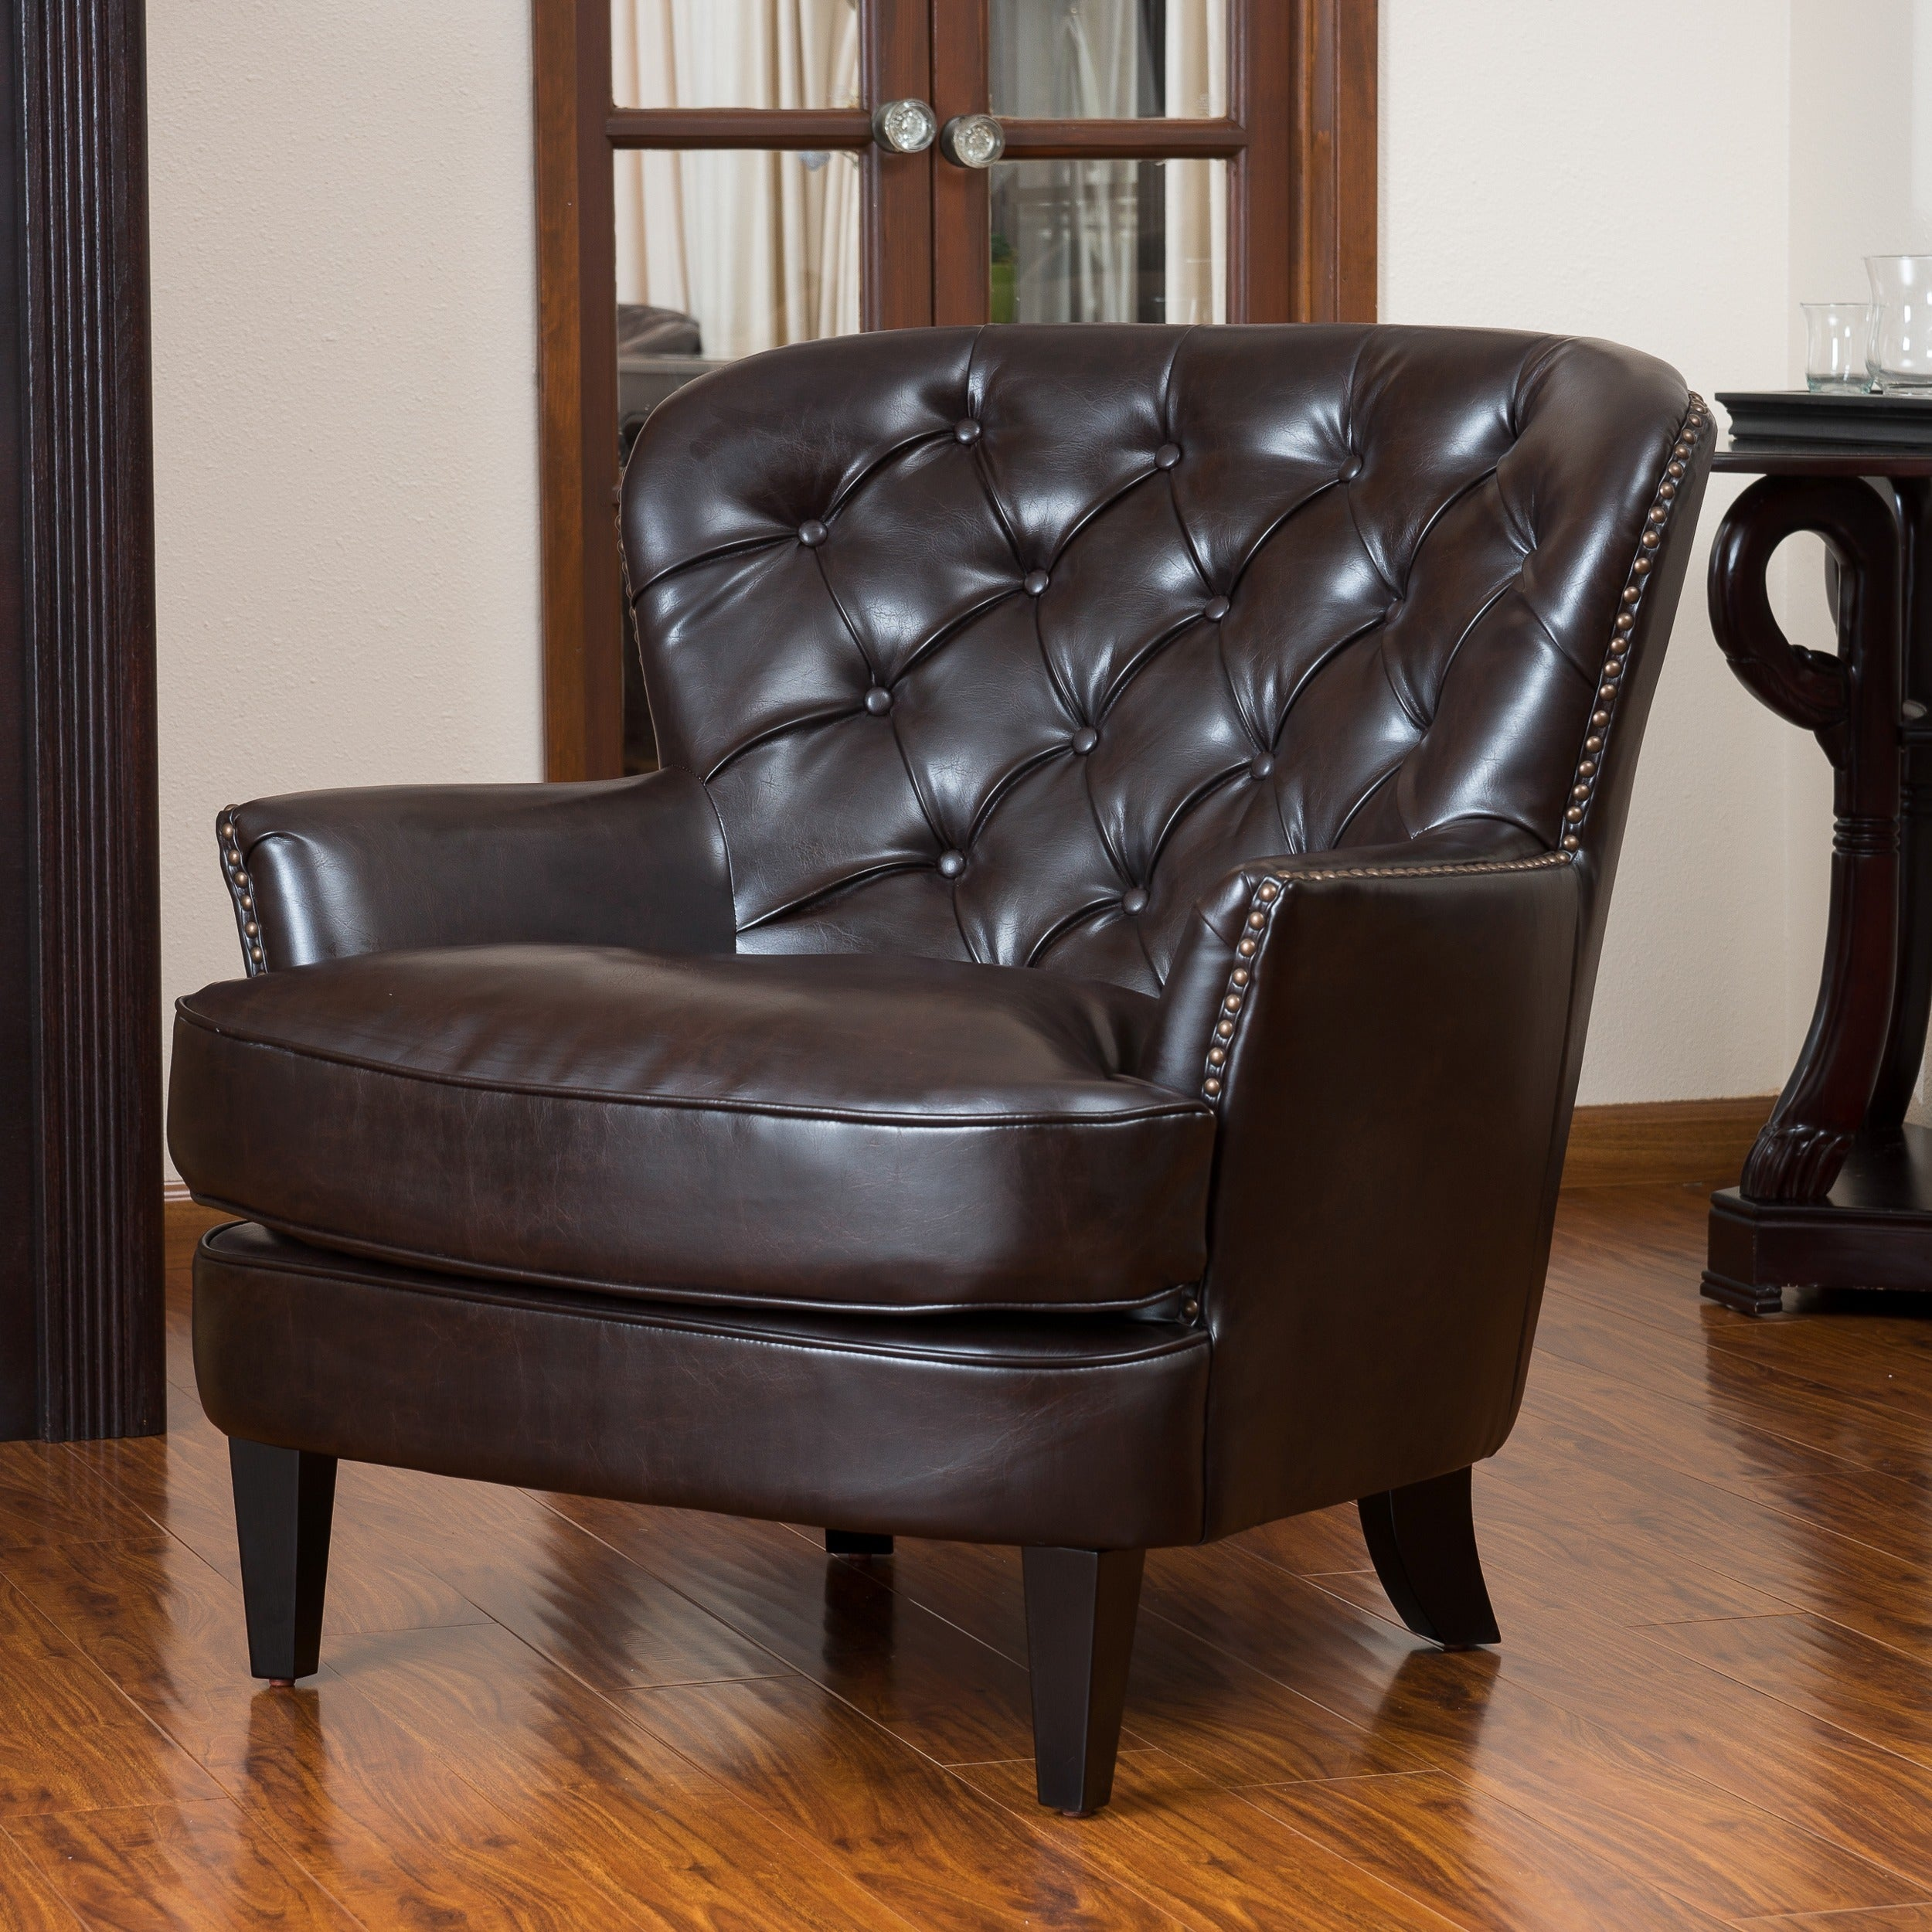 Brown Leather Dining Room Chairs: Oversized Brown Leather Chair Wide Seat Button Tufted Sofa